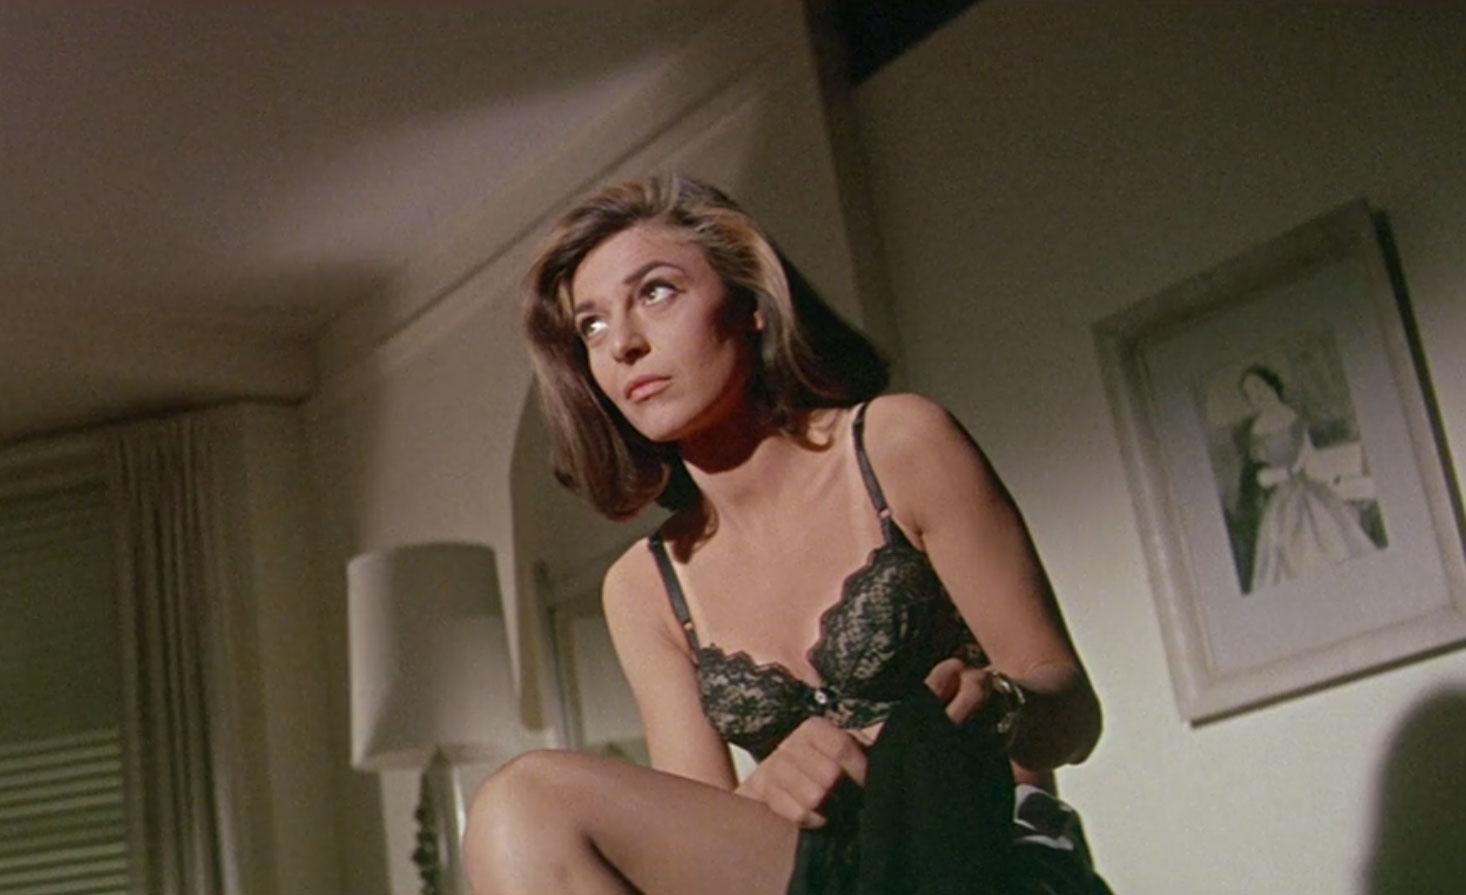 <strong>Mrs. Robinson's Lace Bra                                   </strong> Anne Bancroft seduced audiences — and Dustin Hoffman's Benjamin Braddock — with her black brassiere in the classic 1967 film <i>The Graduate</i>.